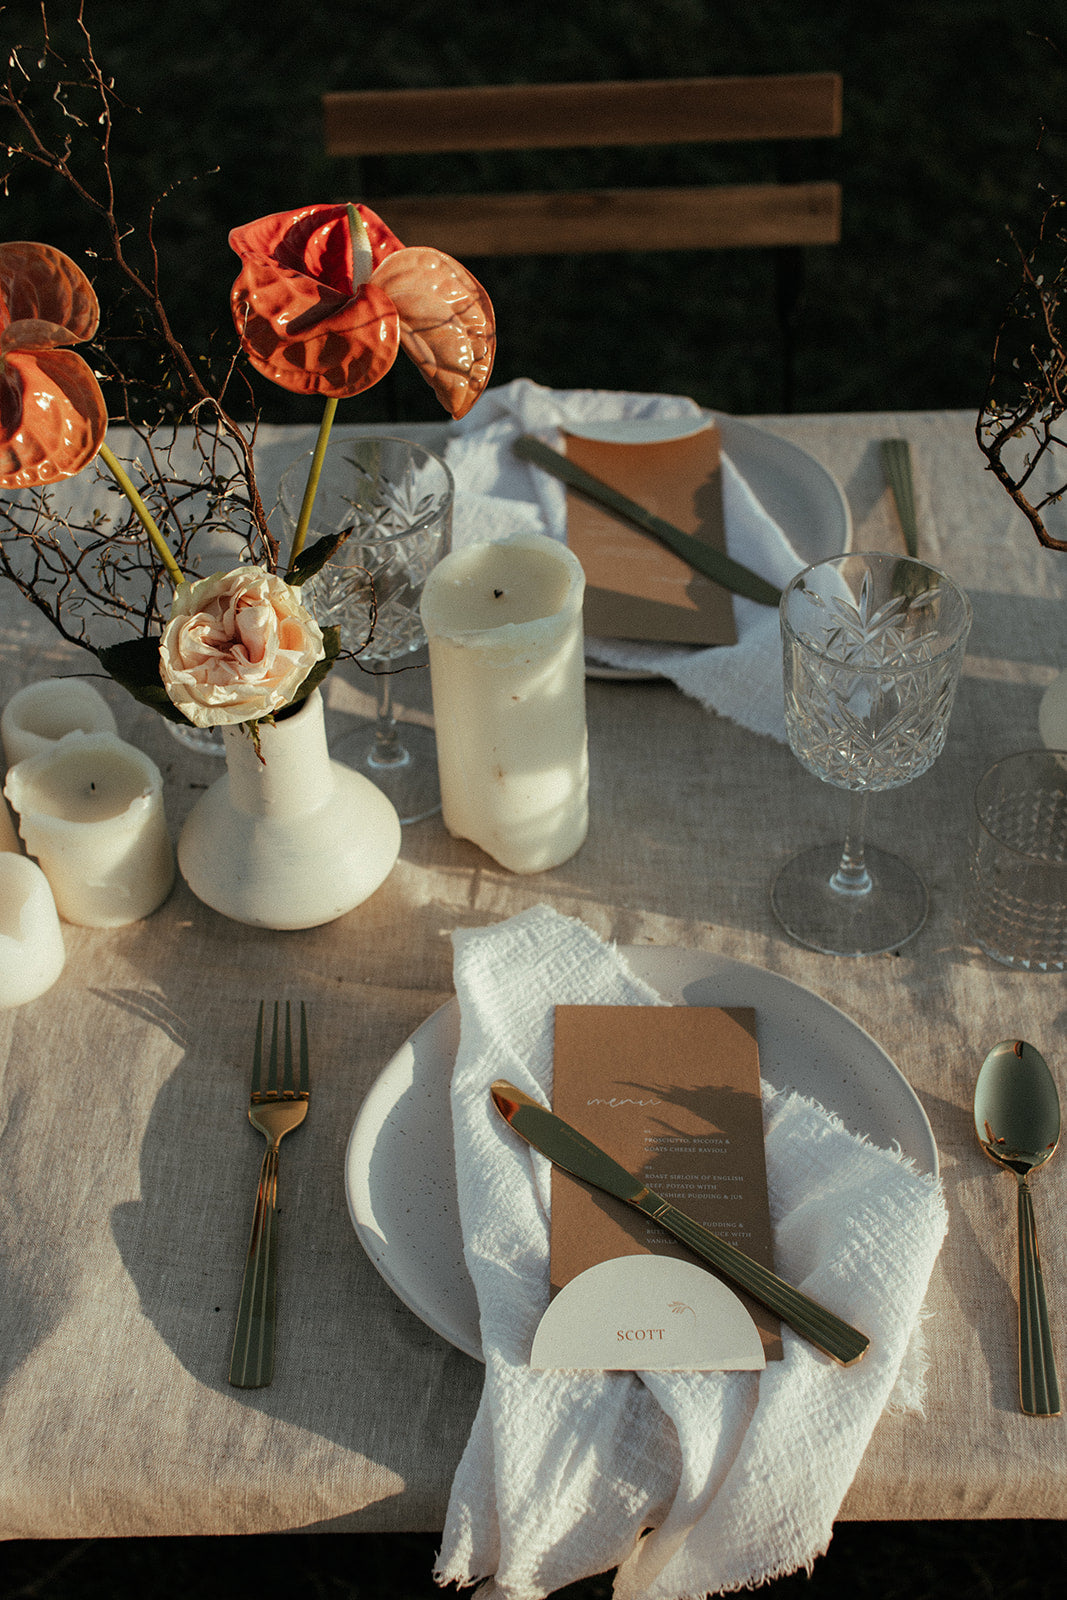 Beach Outdoor Wedding Table setting natural tablecloth white napkins